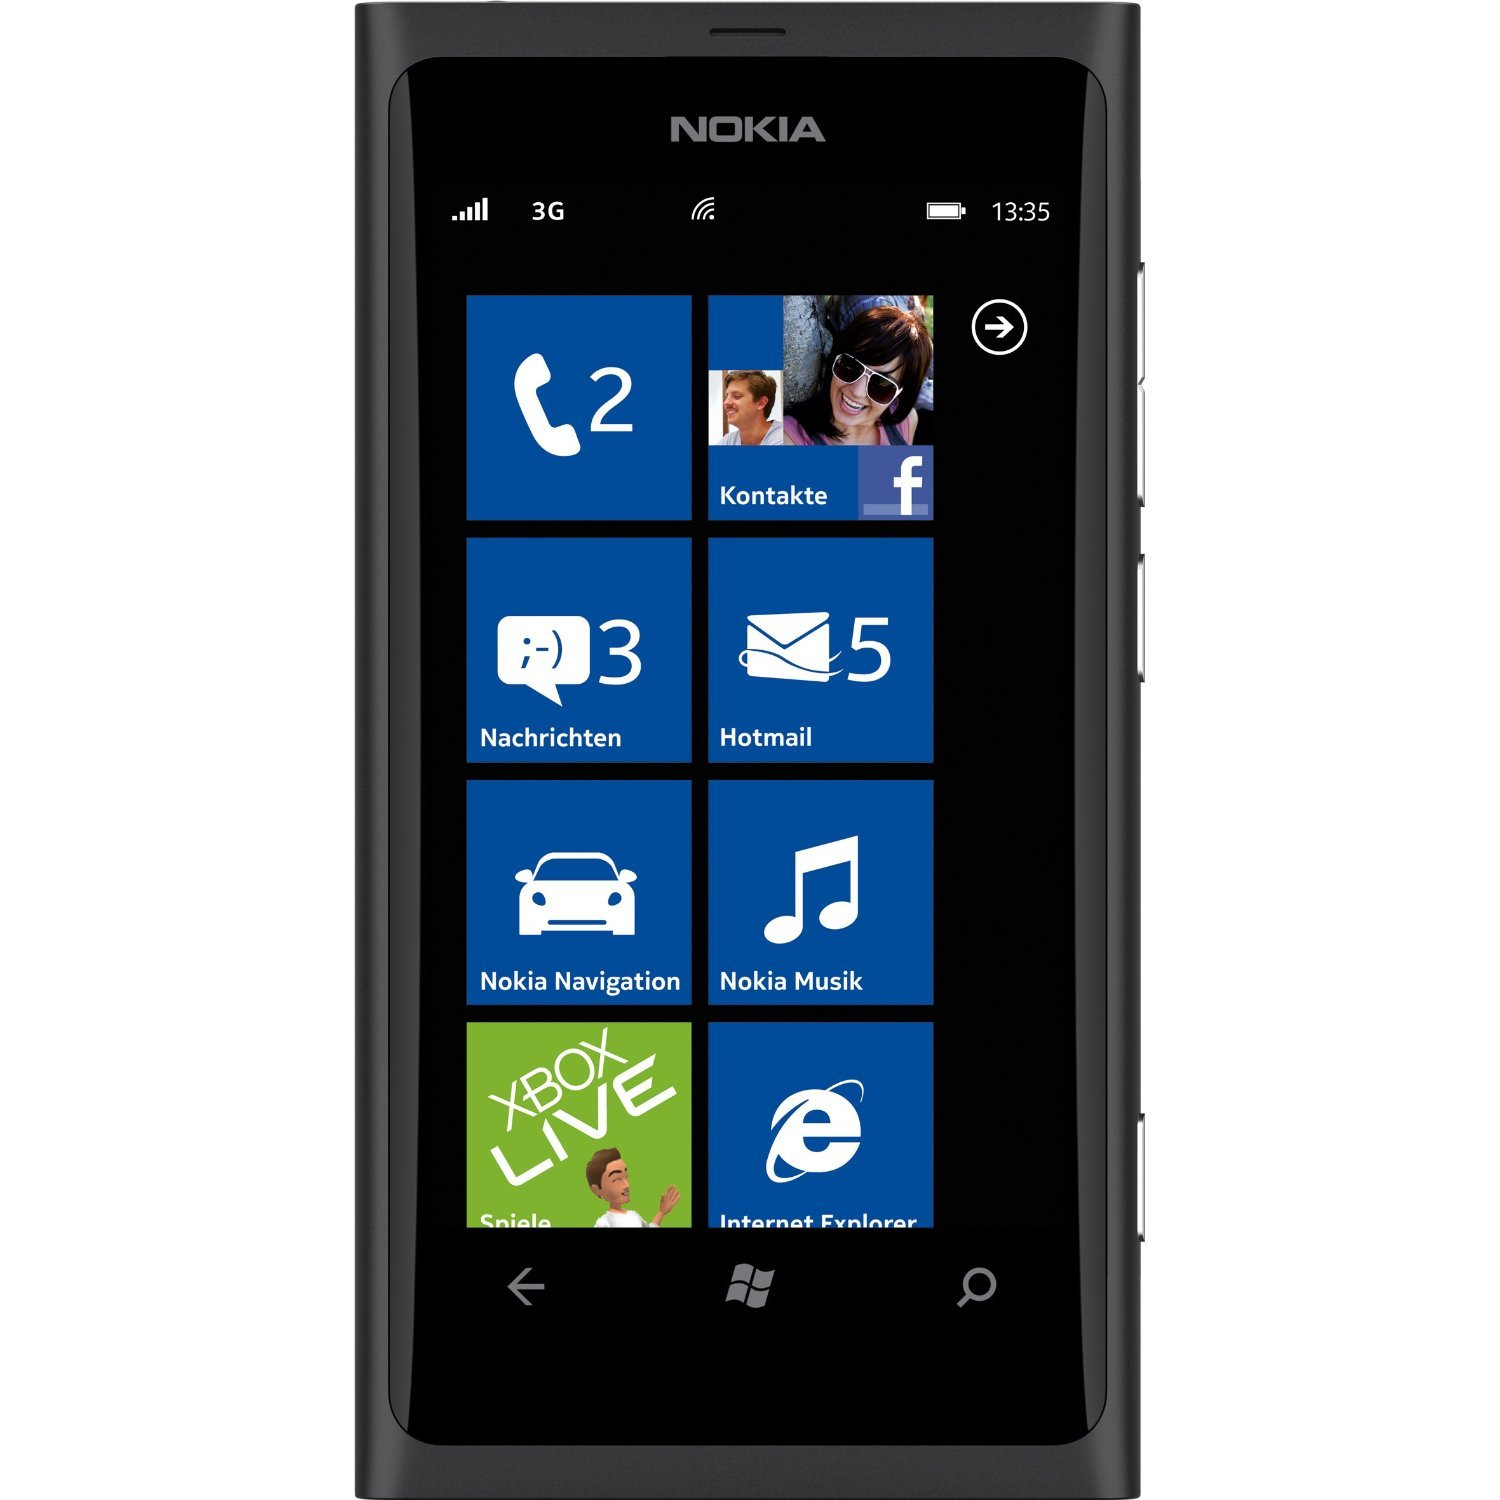 nokia phones models with prices. amazon.com: nokia lumia 800 black 16gb -factory unlocked-: cell phones \u0026 accessories models with prices